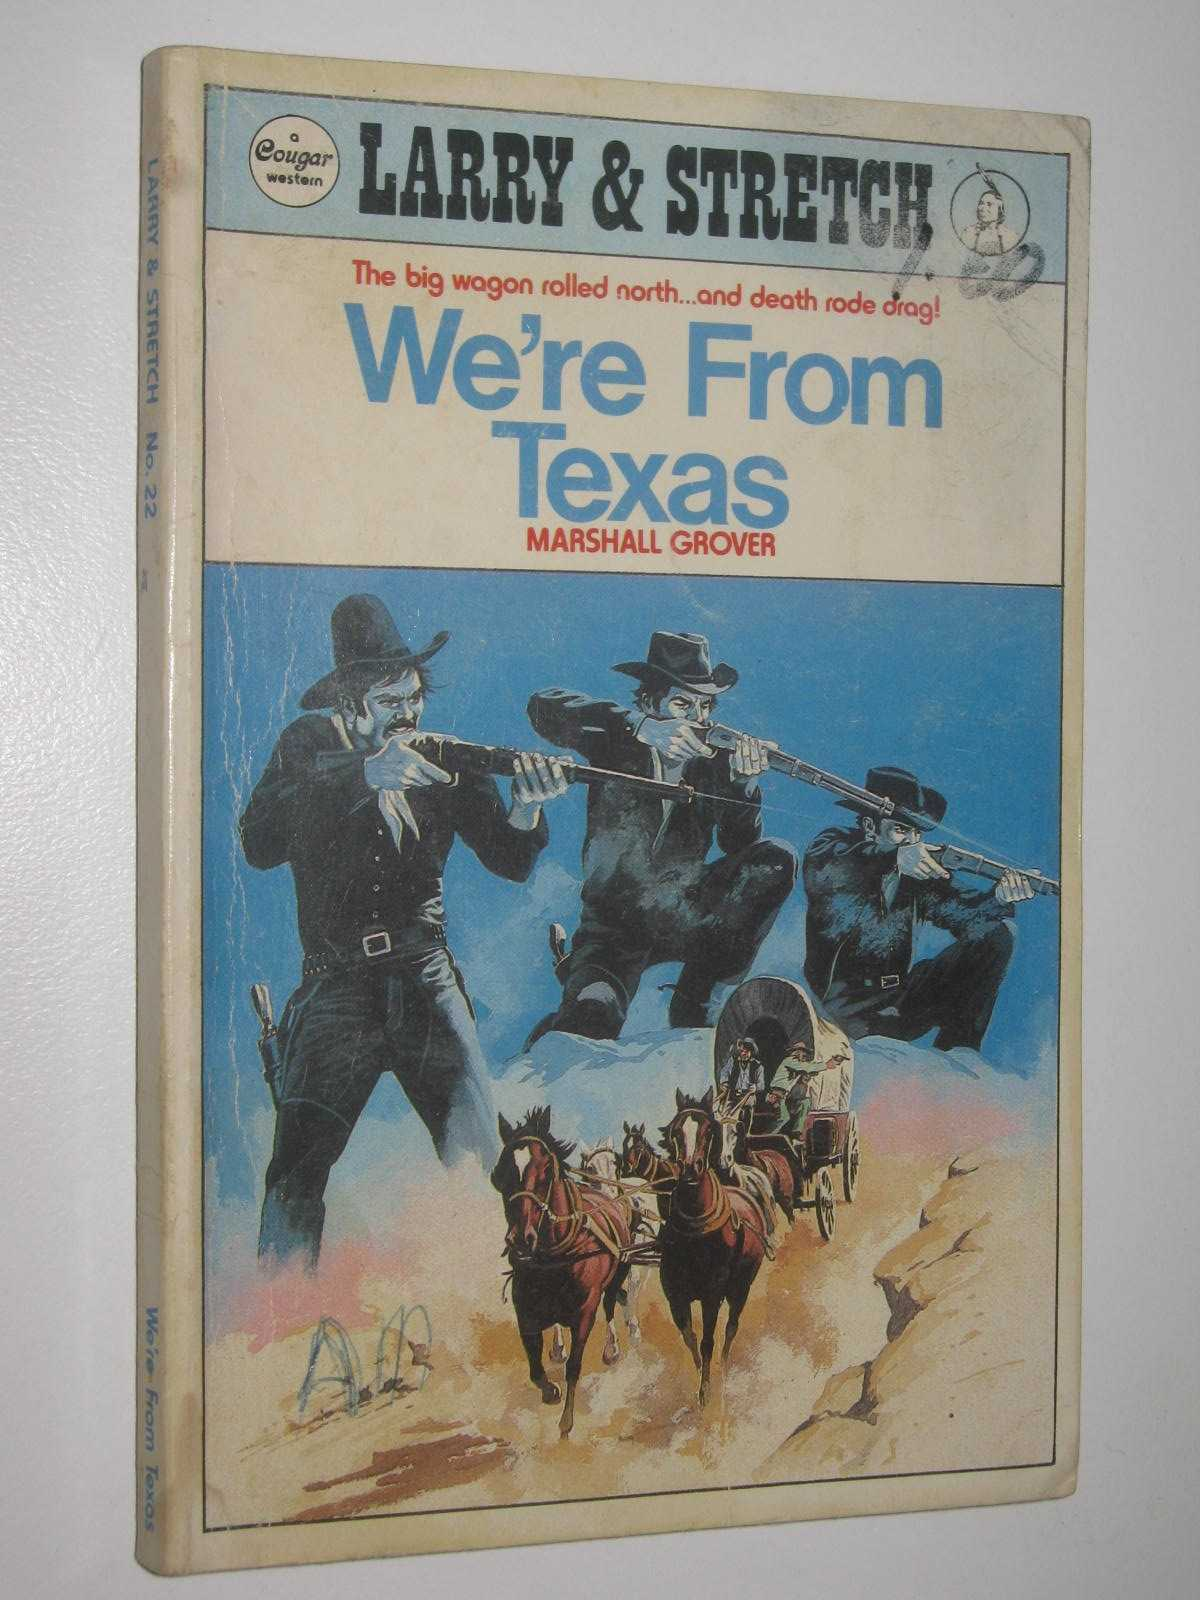 Image for We're from Texas - Larry and Stretch [Cougar Western] Series #22